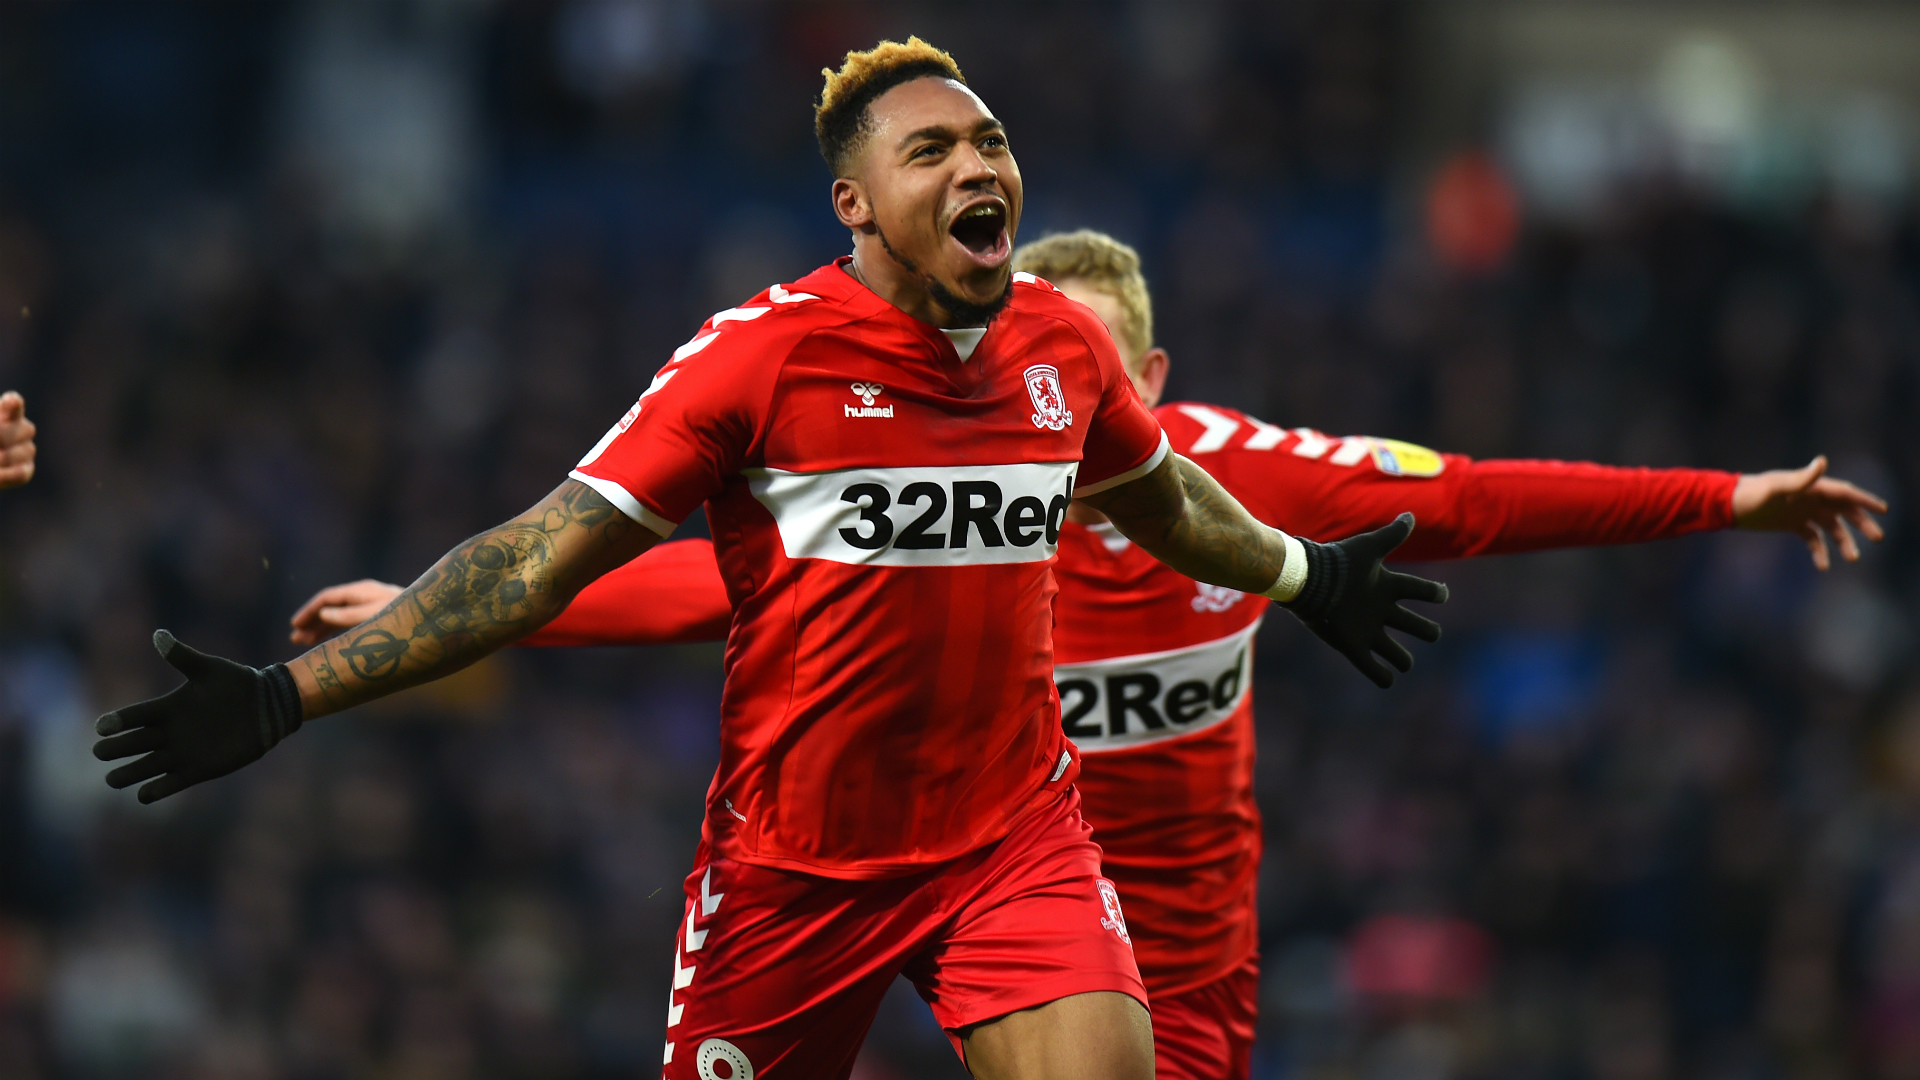 Assombalonga on target in 3-2 Middlesbrough friendly defeat vs Newcastle United | Goal.com